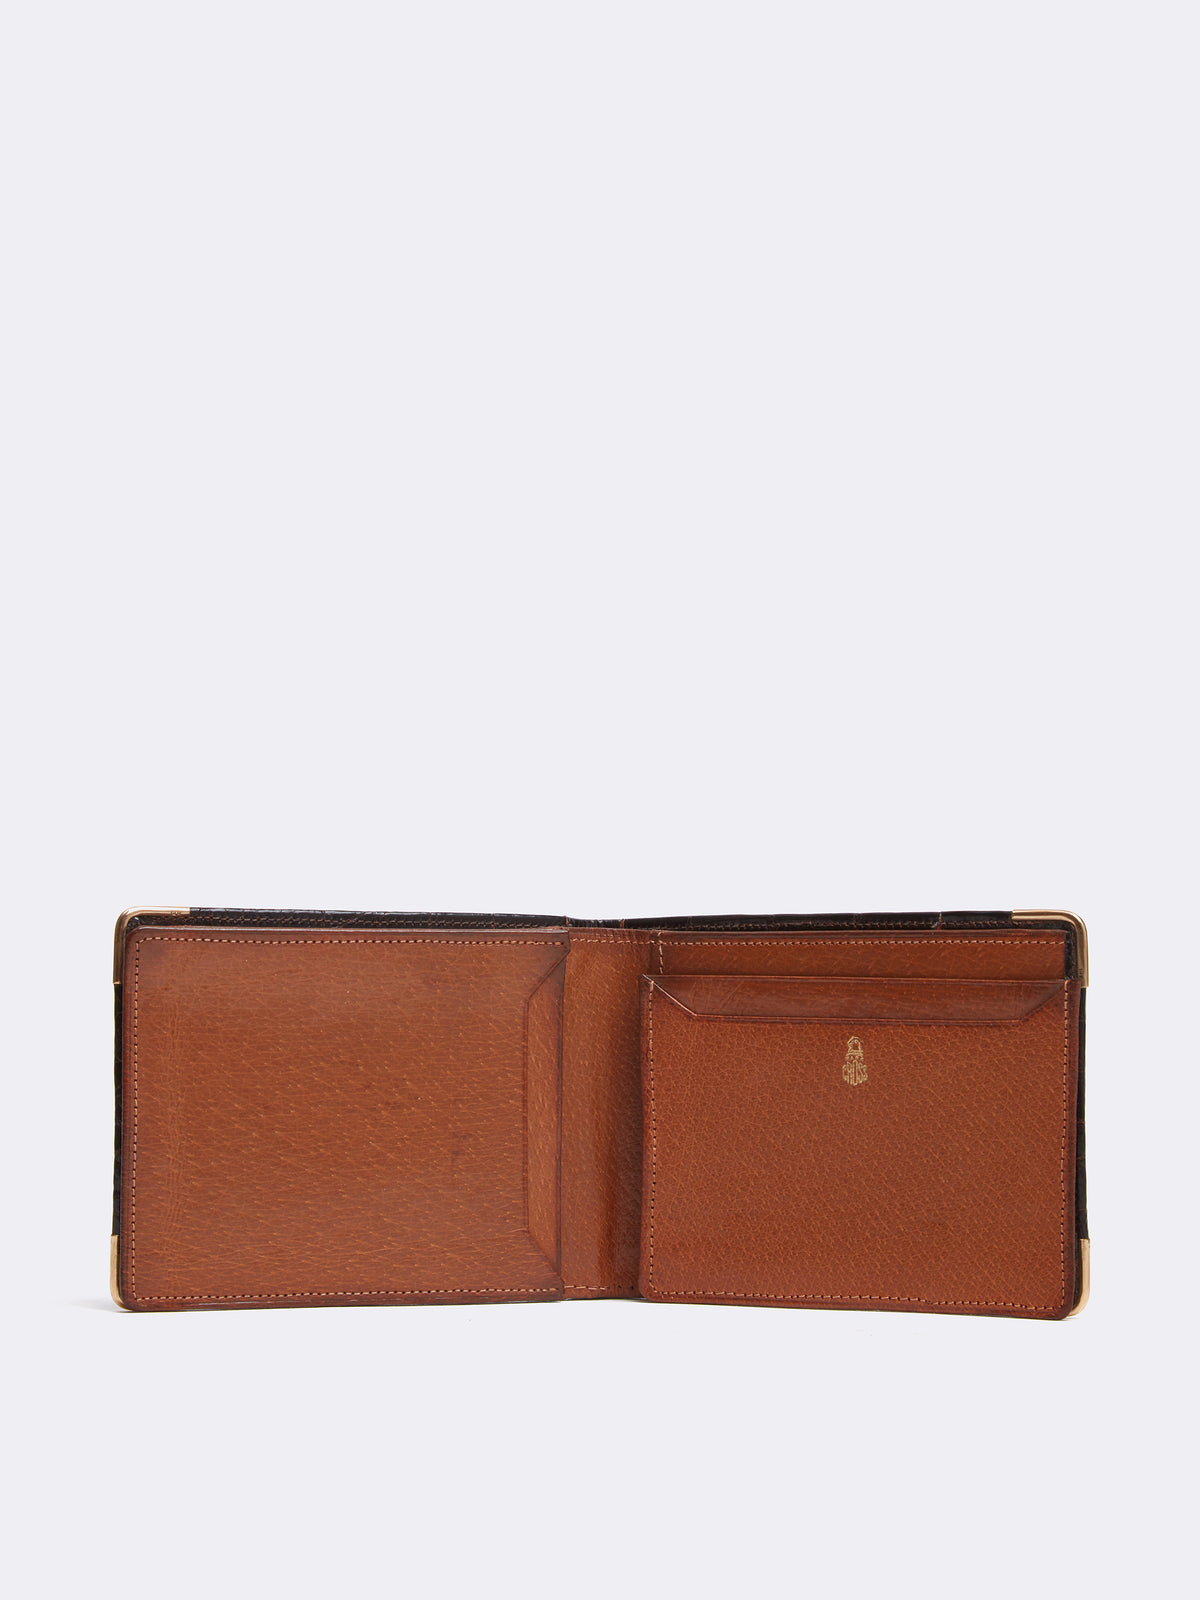 Mark Cross Archive Crocodile Bi-fold Wallet Chocolate Interior